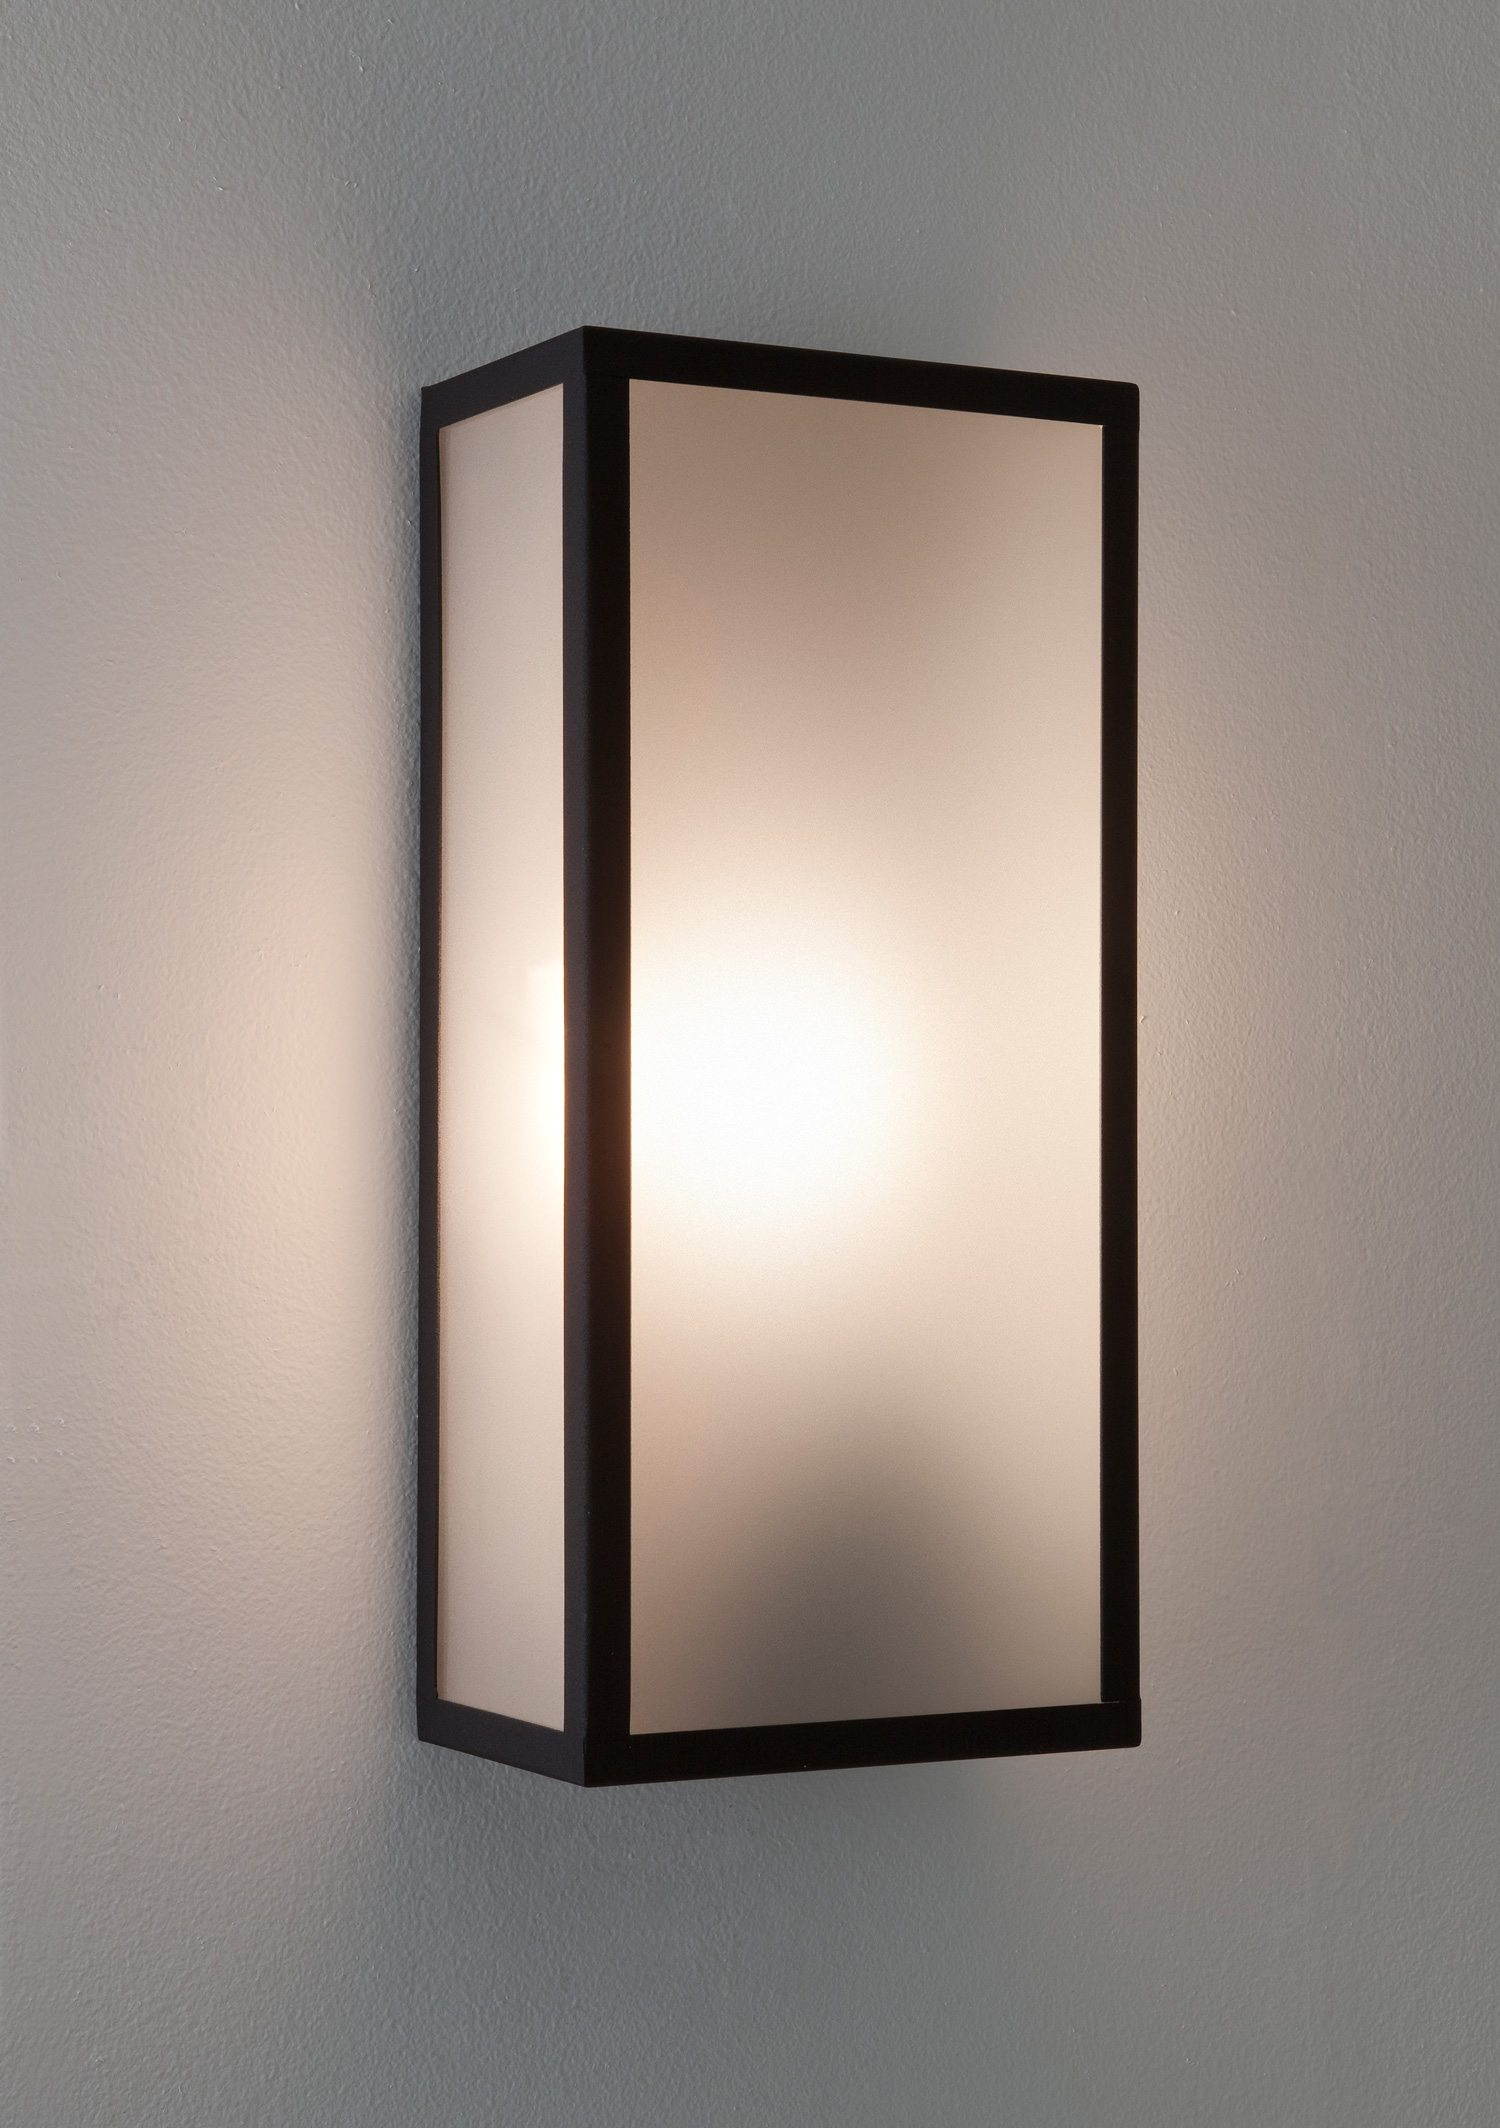 Etched Glass Wall Lights : Astro Messina 7187 exterior external wall light 60W E27 black frosted glass eBay